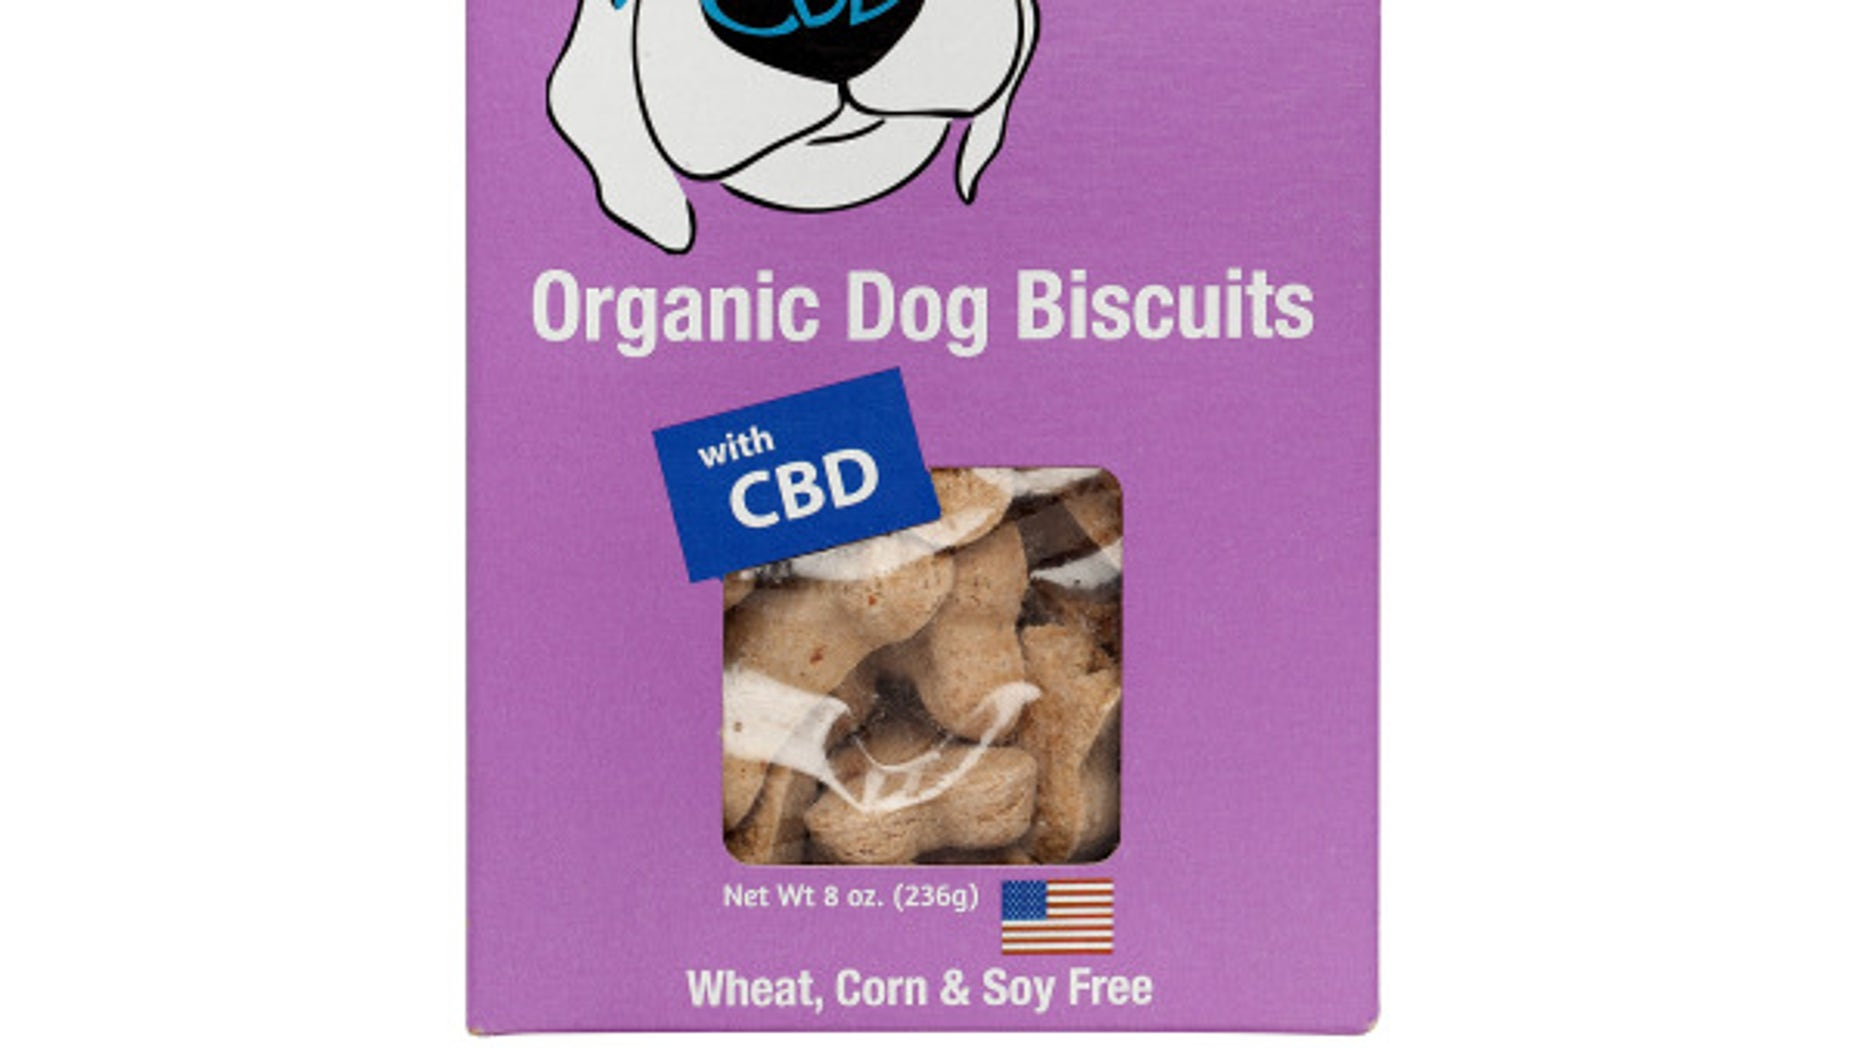 Canna-Biscuits for dogs come in many flavors like Turkey & Cranberry and Pumpkin Pie.